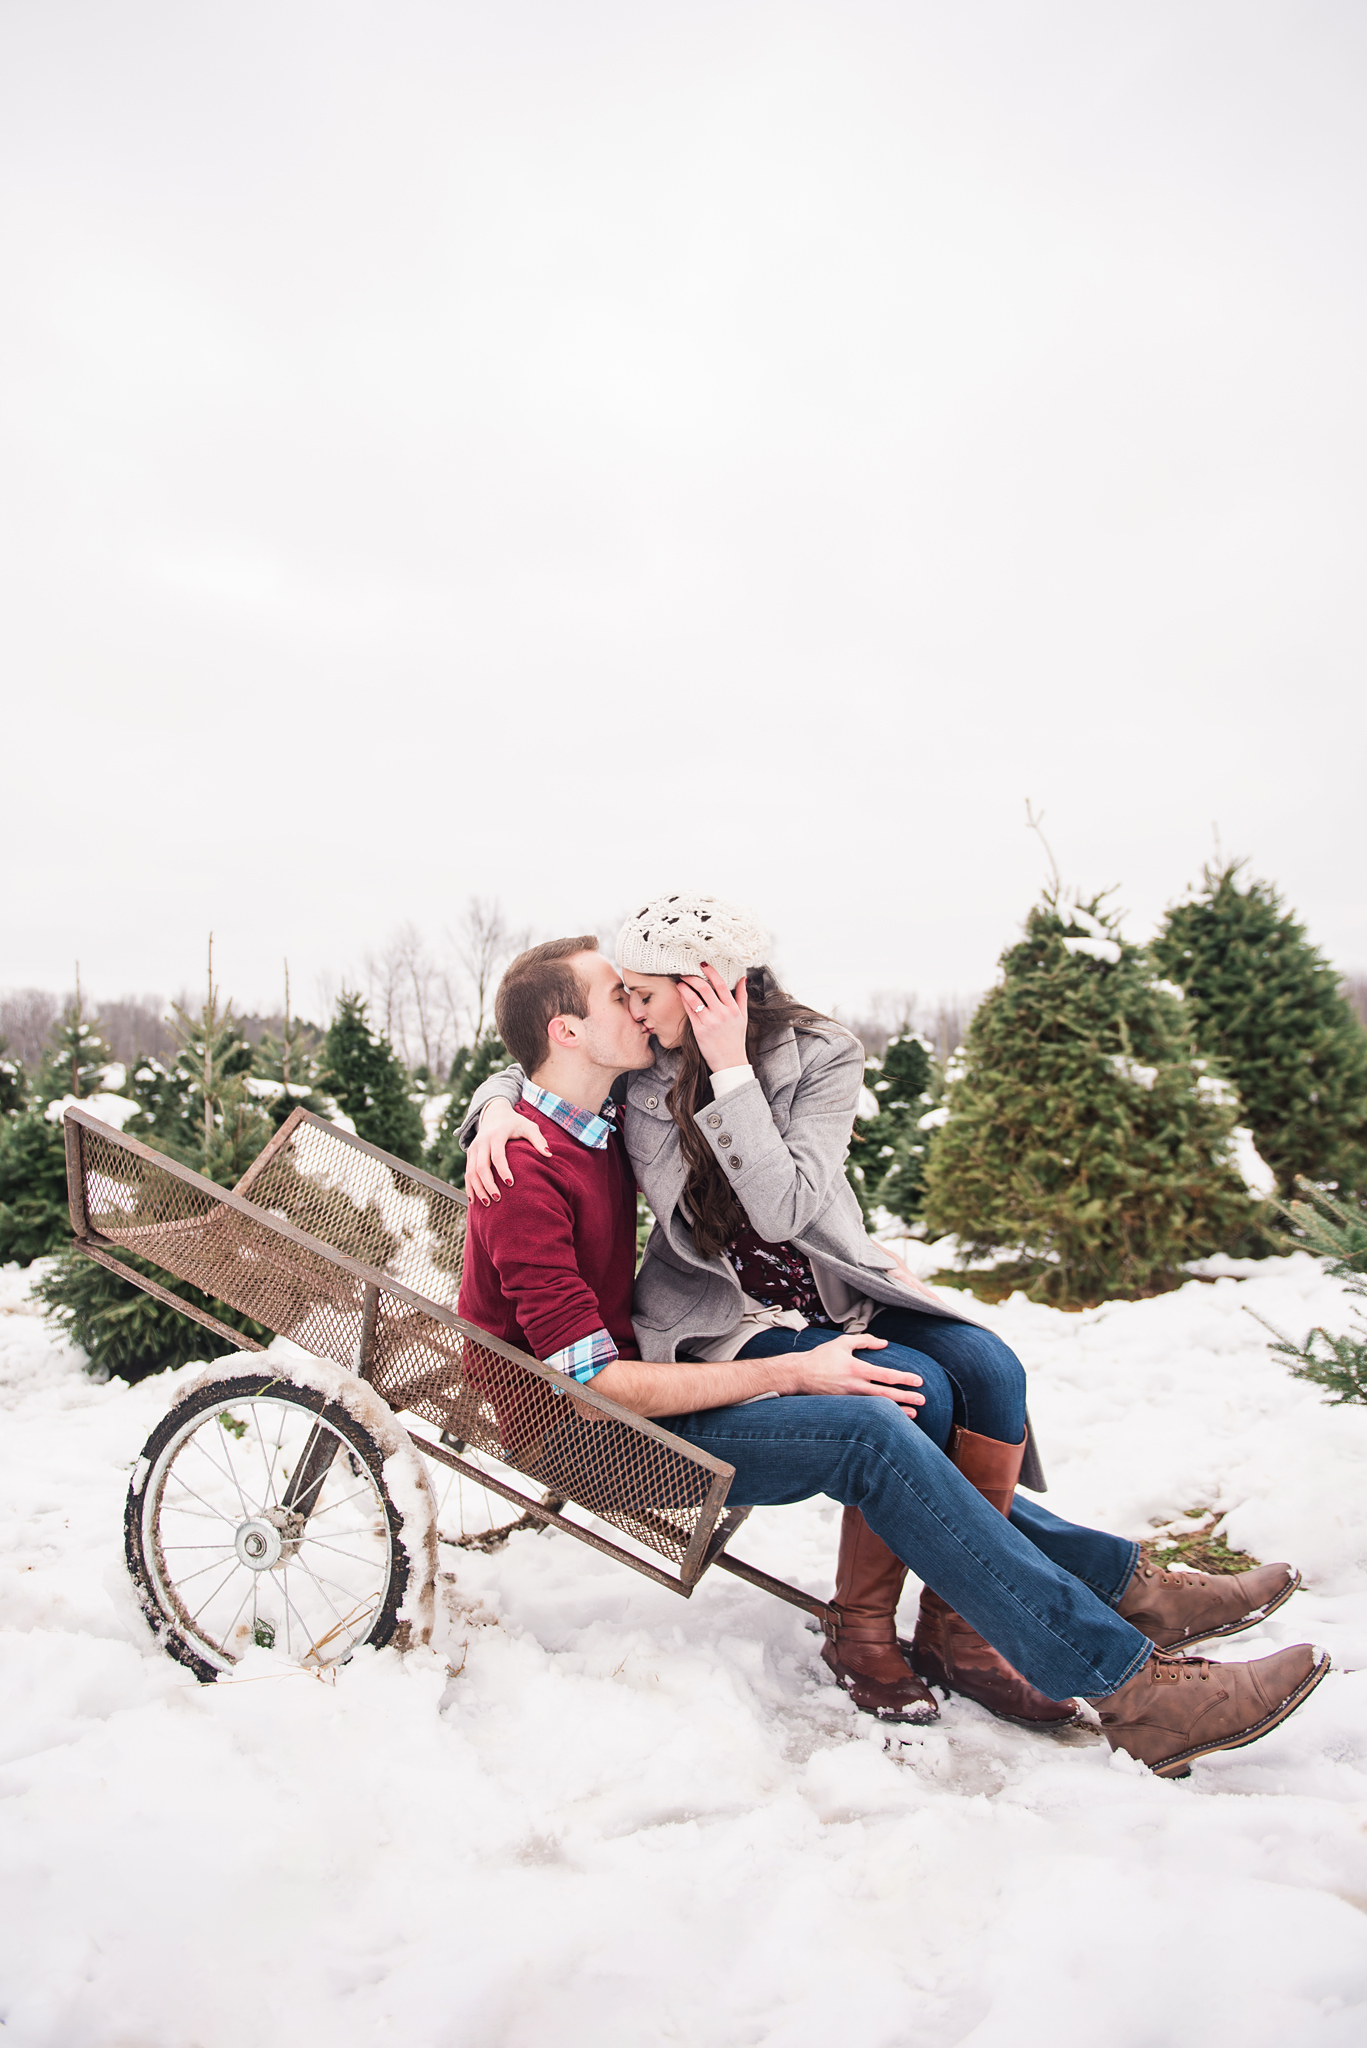 Woody_Acres_Rochester_Engagement_Session_JILL_STUDIO_Rochester_NY_Photographer_154226.jpg